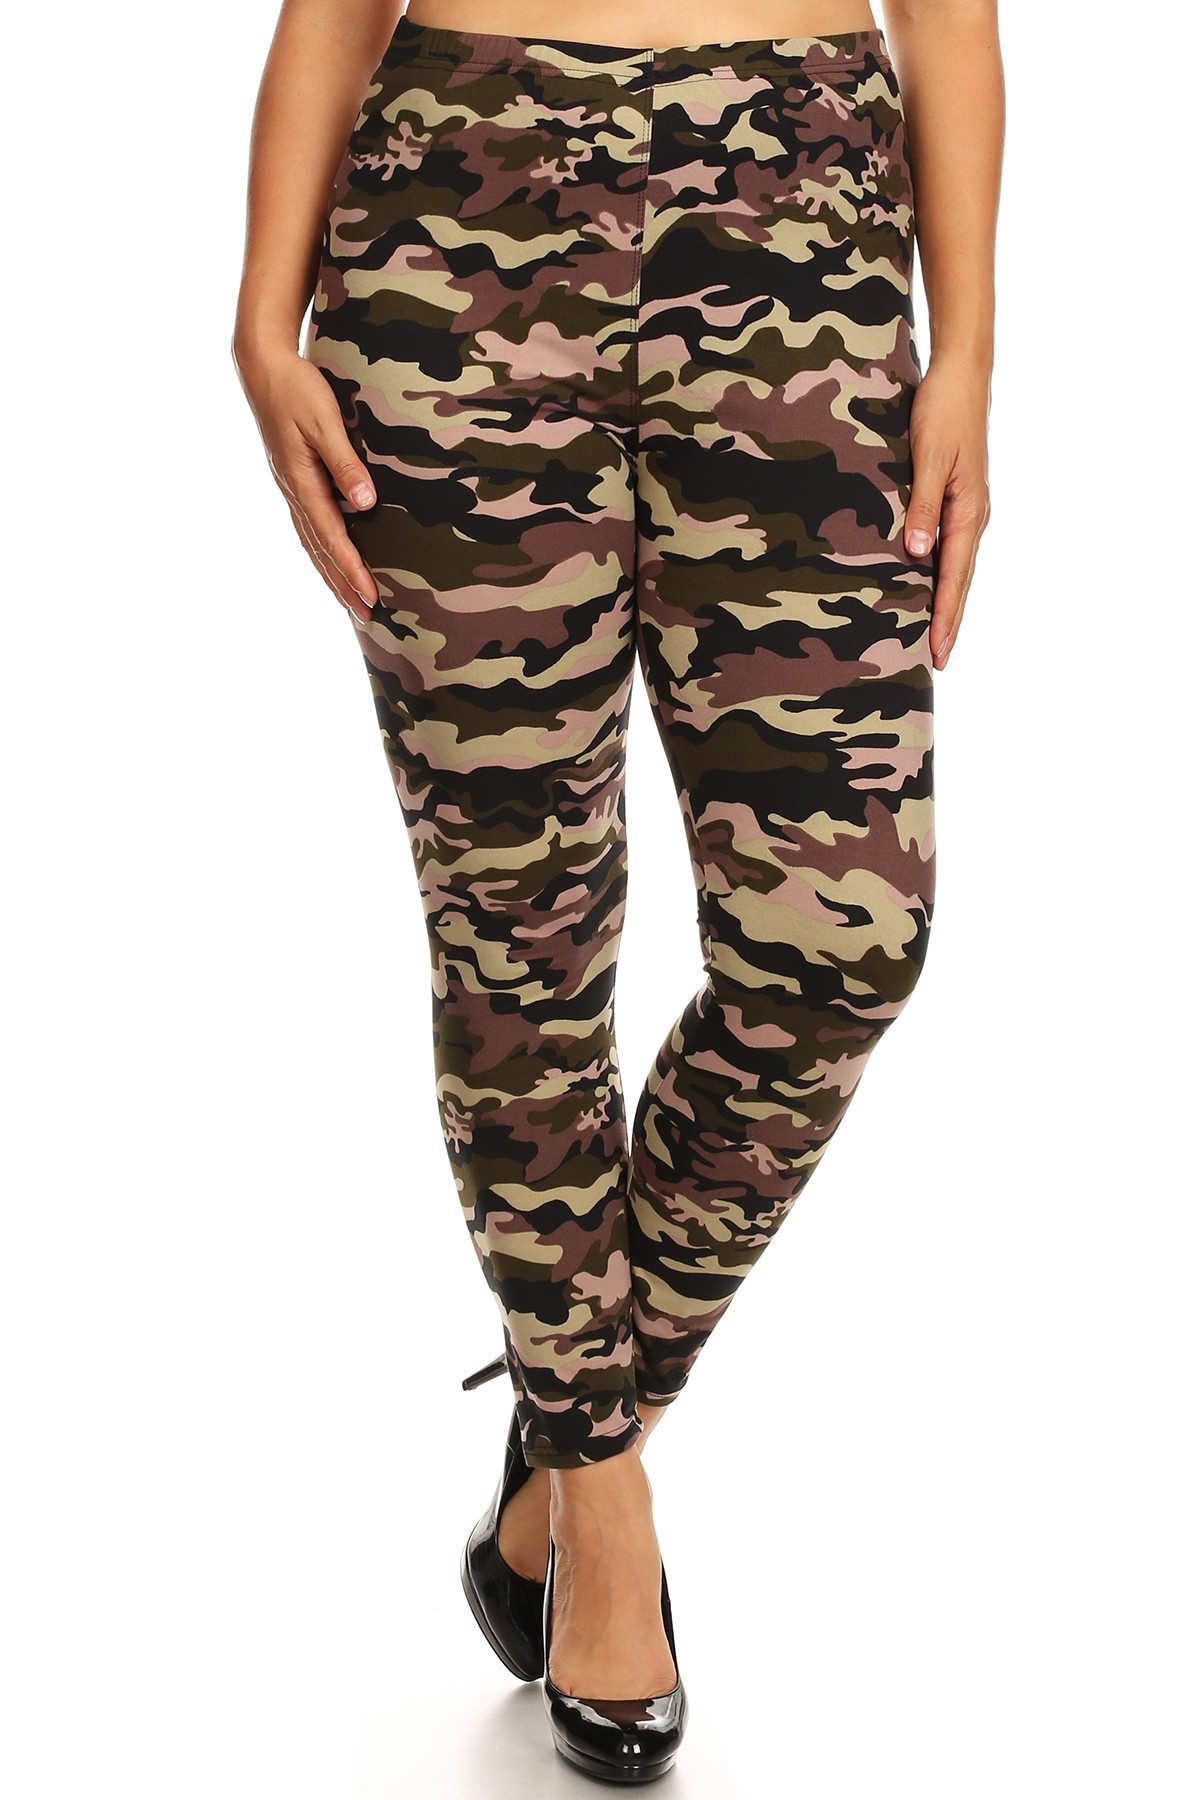 PLUS GREEN/BLACK/BROWN CAMO PRINT BASIC BRUSH POLY FLEECE LINED LEGGING#X8L105-03